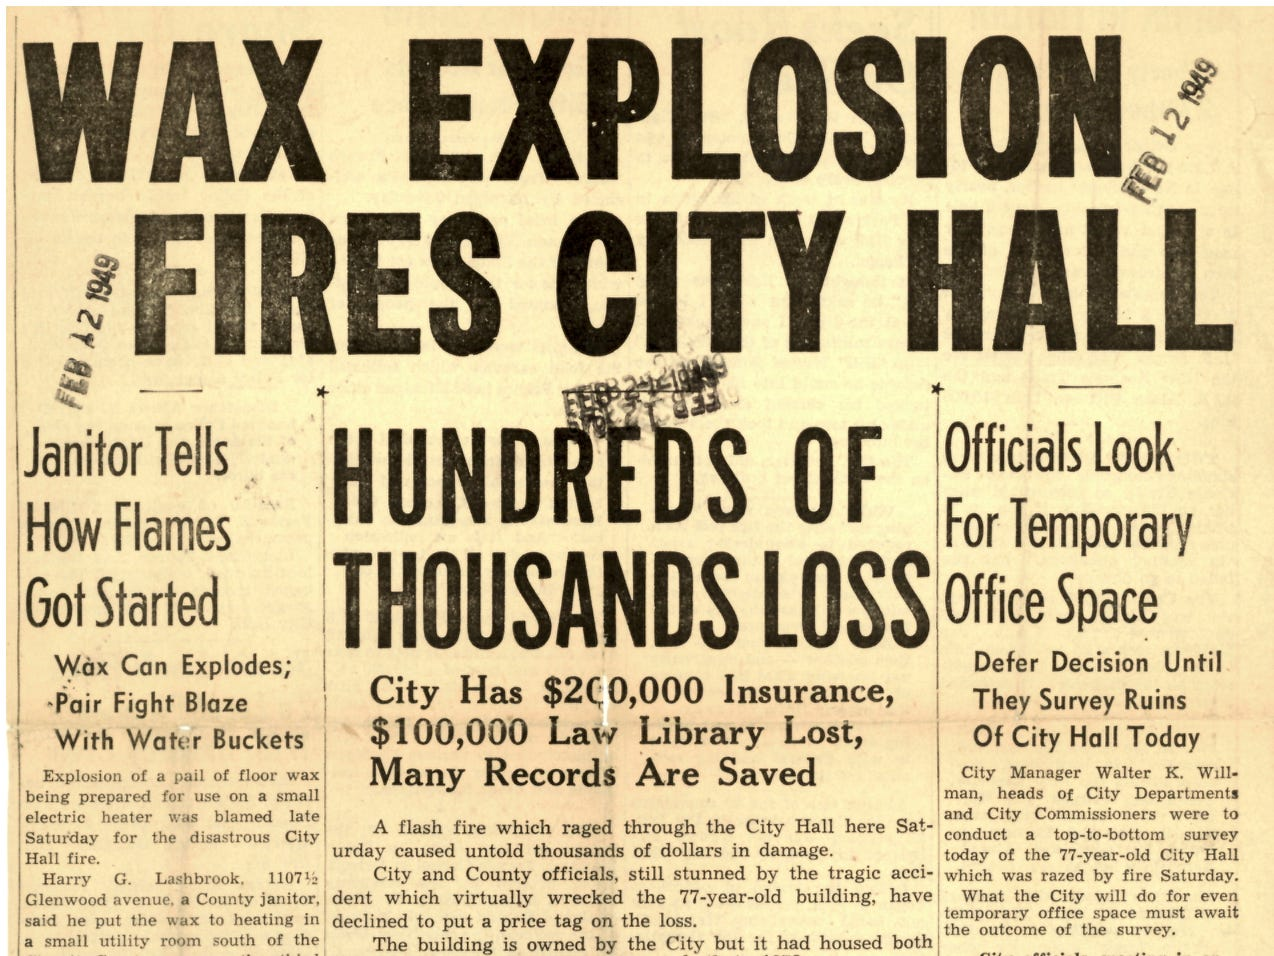 Front page from Sunday, Feb. 13, 1949, the day after the fire.